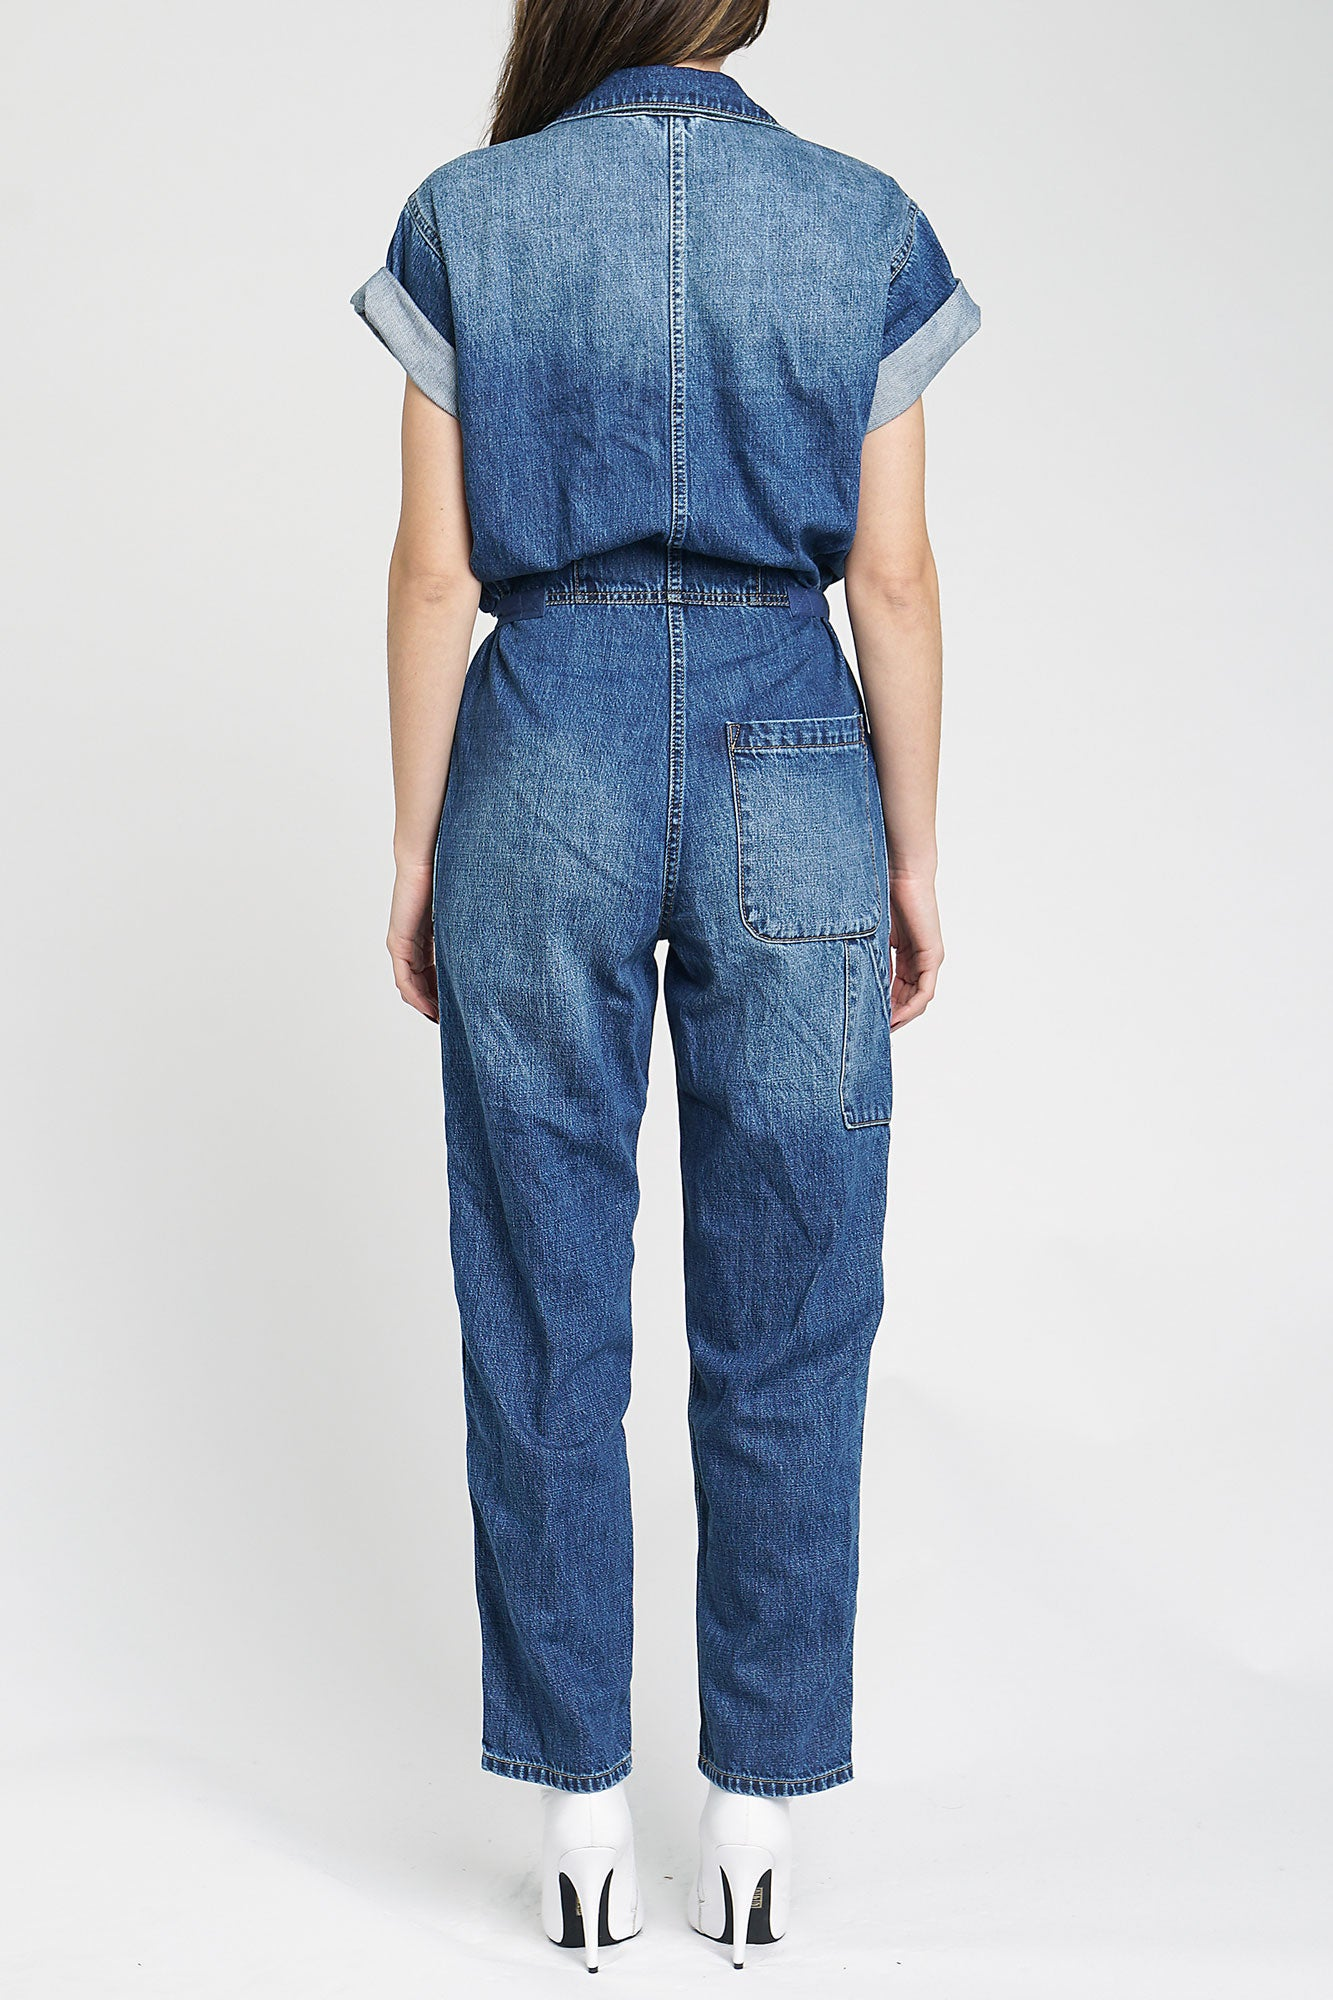 Grover Short Sleeve Field Suit - La La Land